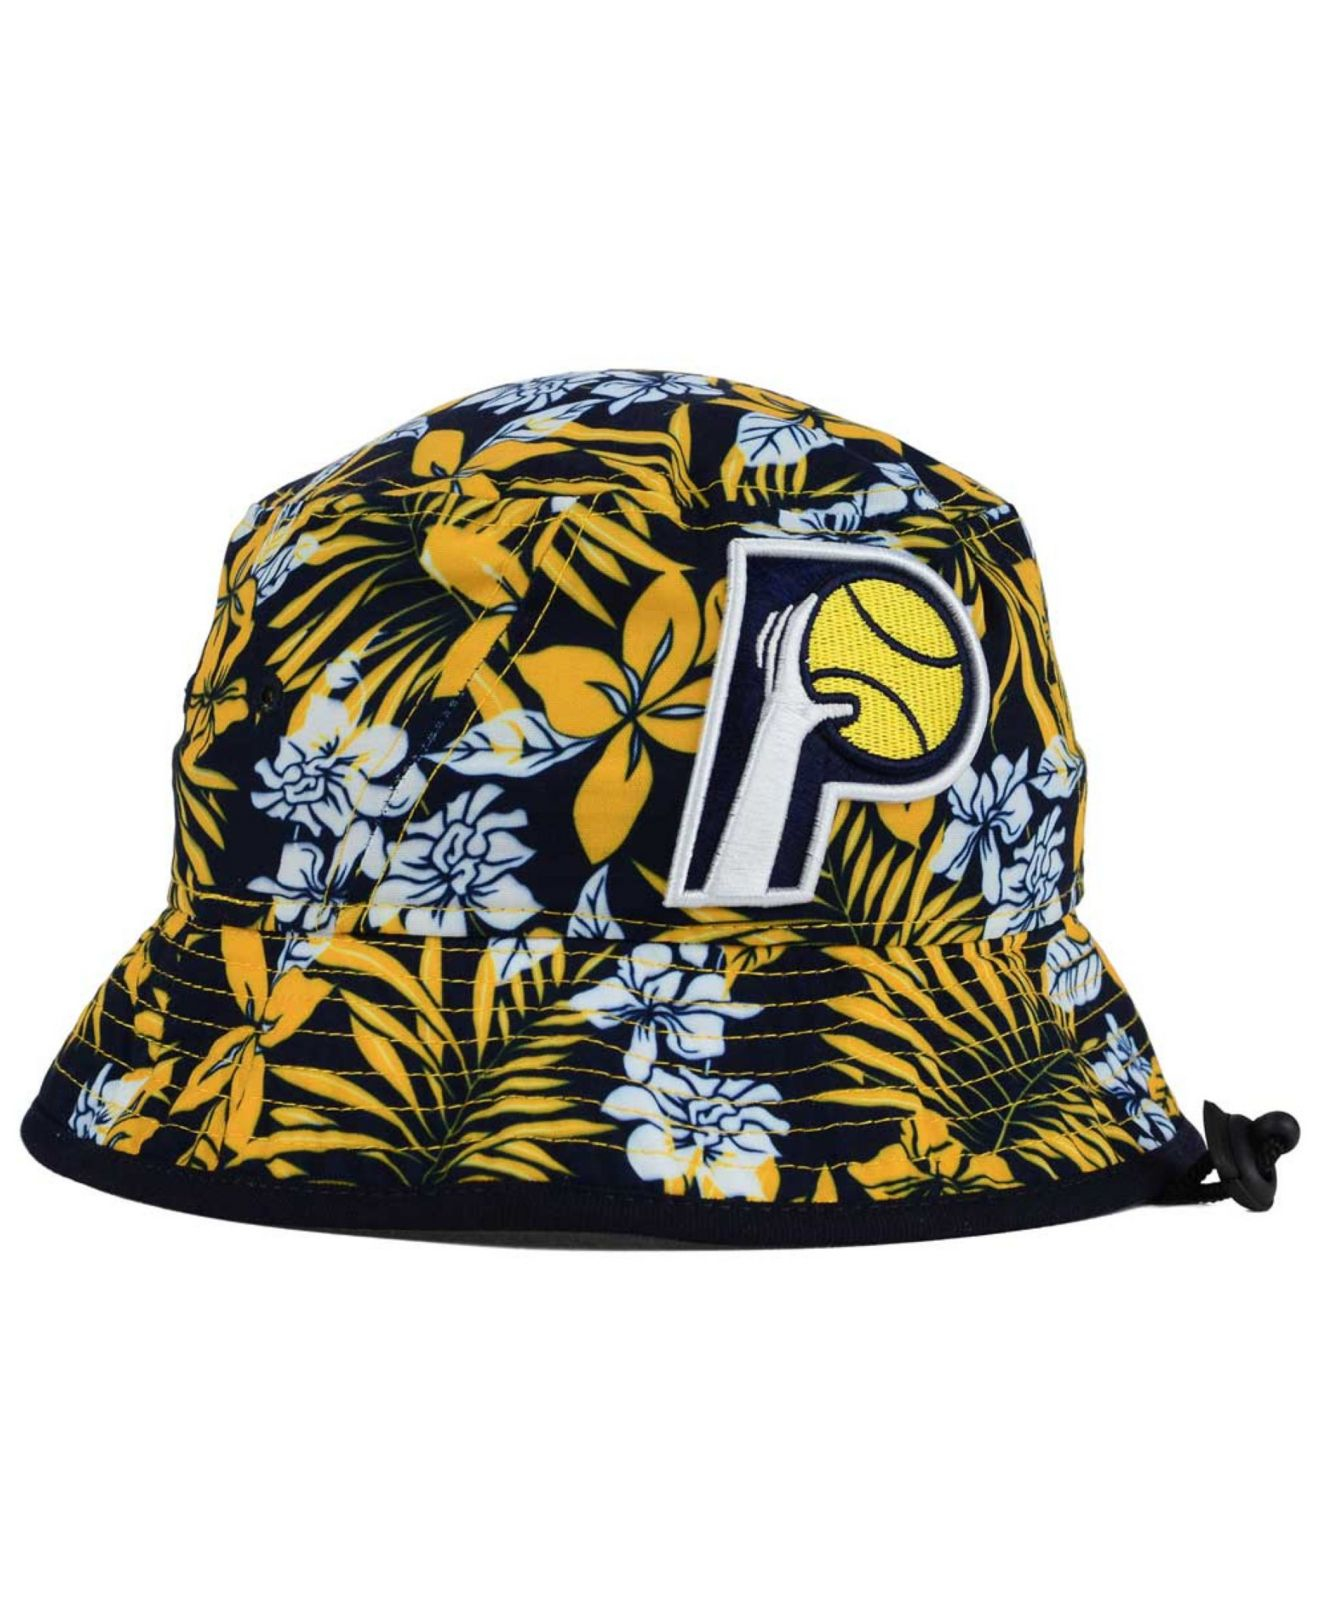 online store ca35f 840ad KTZ Indiana Pacers Wowie Bucket Hat in Yellow for Men - Lyst